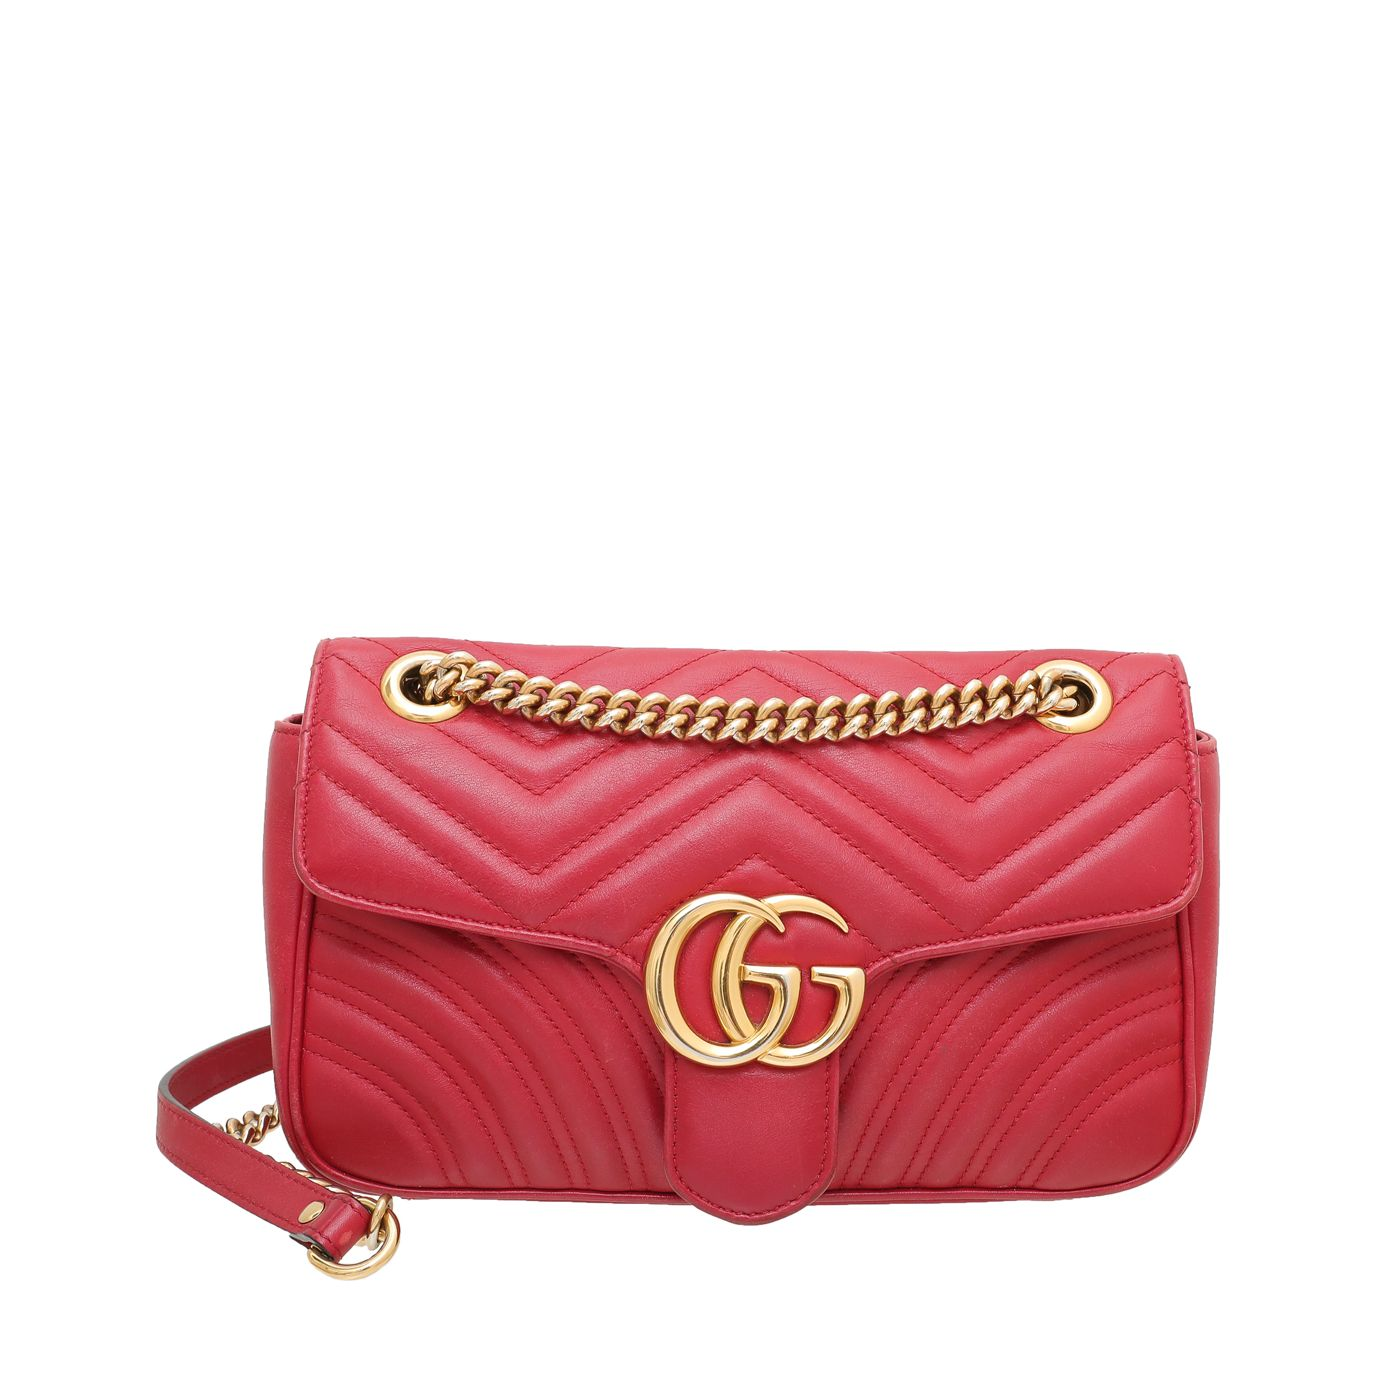 Gucci Red GG Marmont Matelasse Shoulder Bag Small